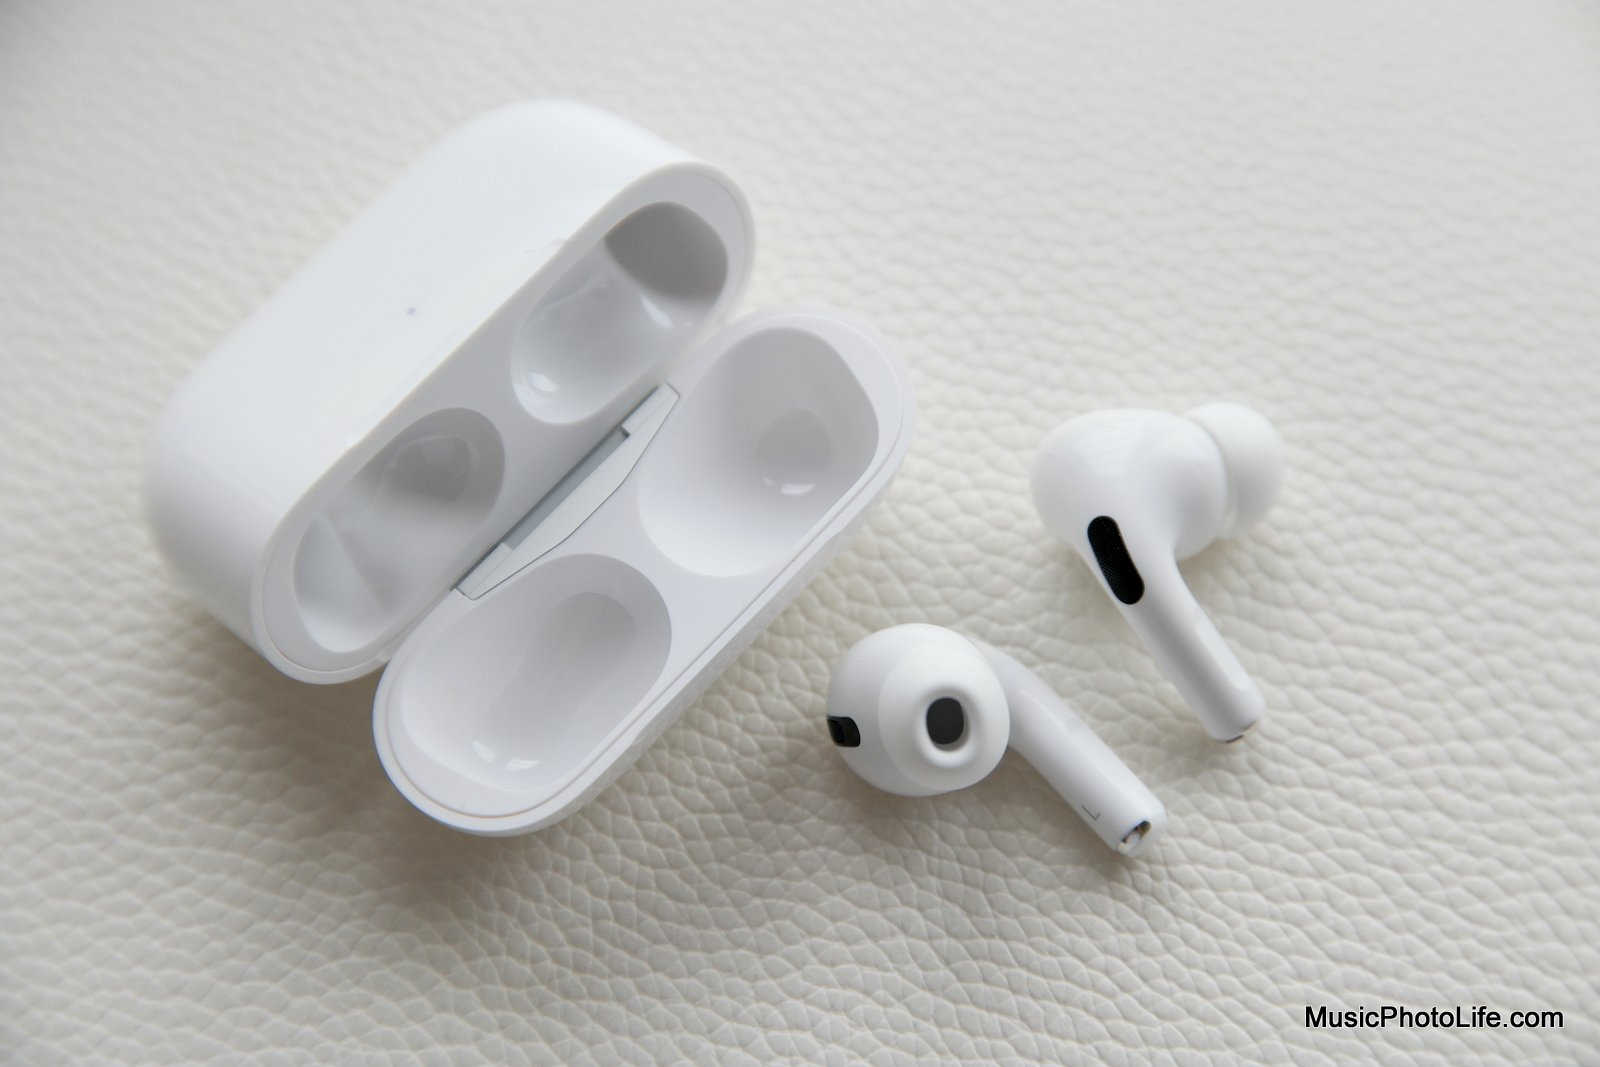 Apple AirPods Pro review by Chester Tan from musicphotolife.com Singapore tech blog